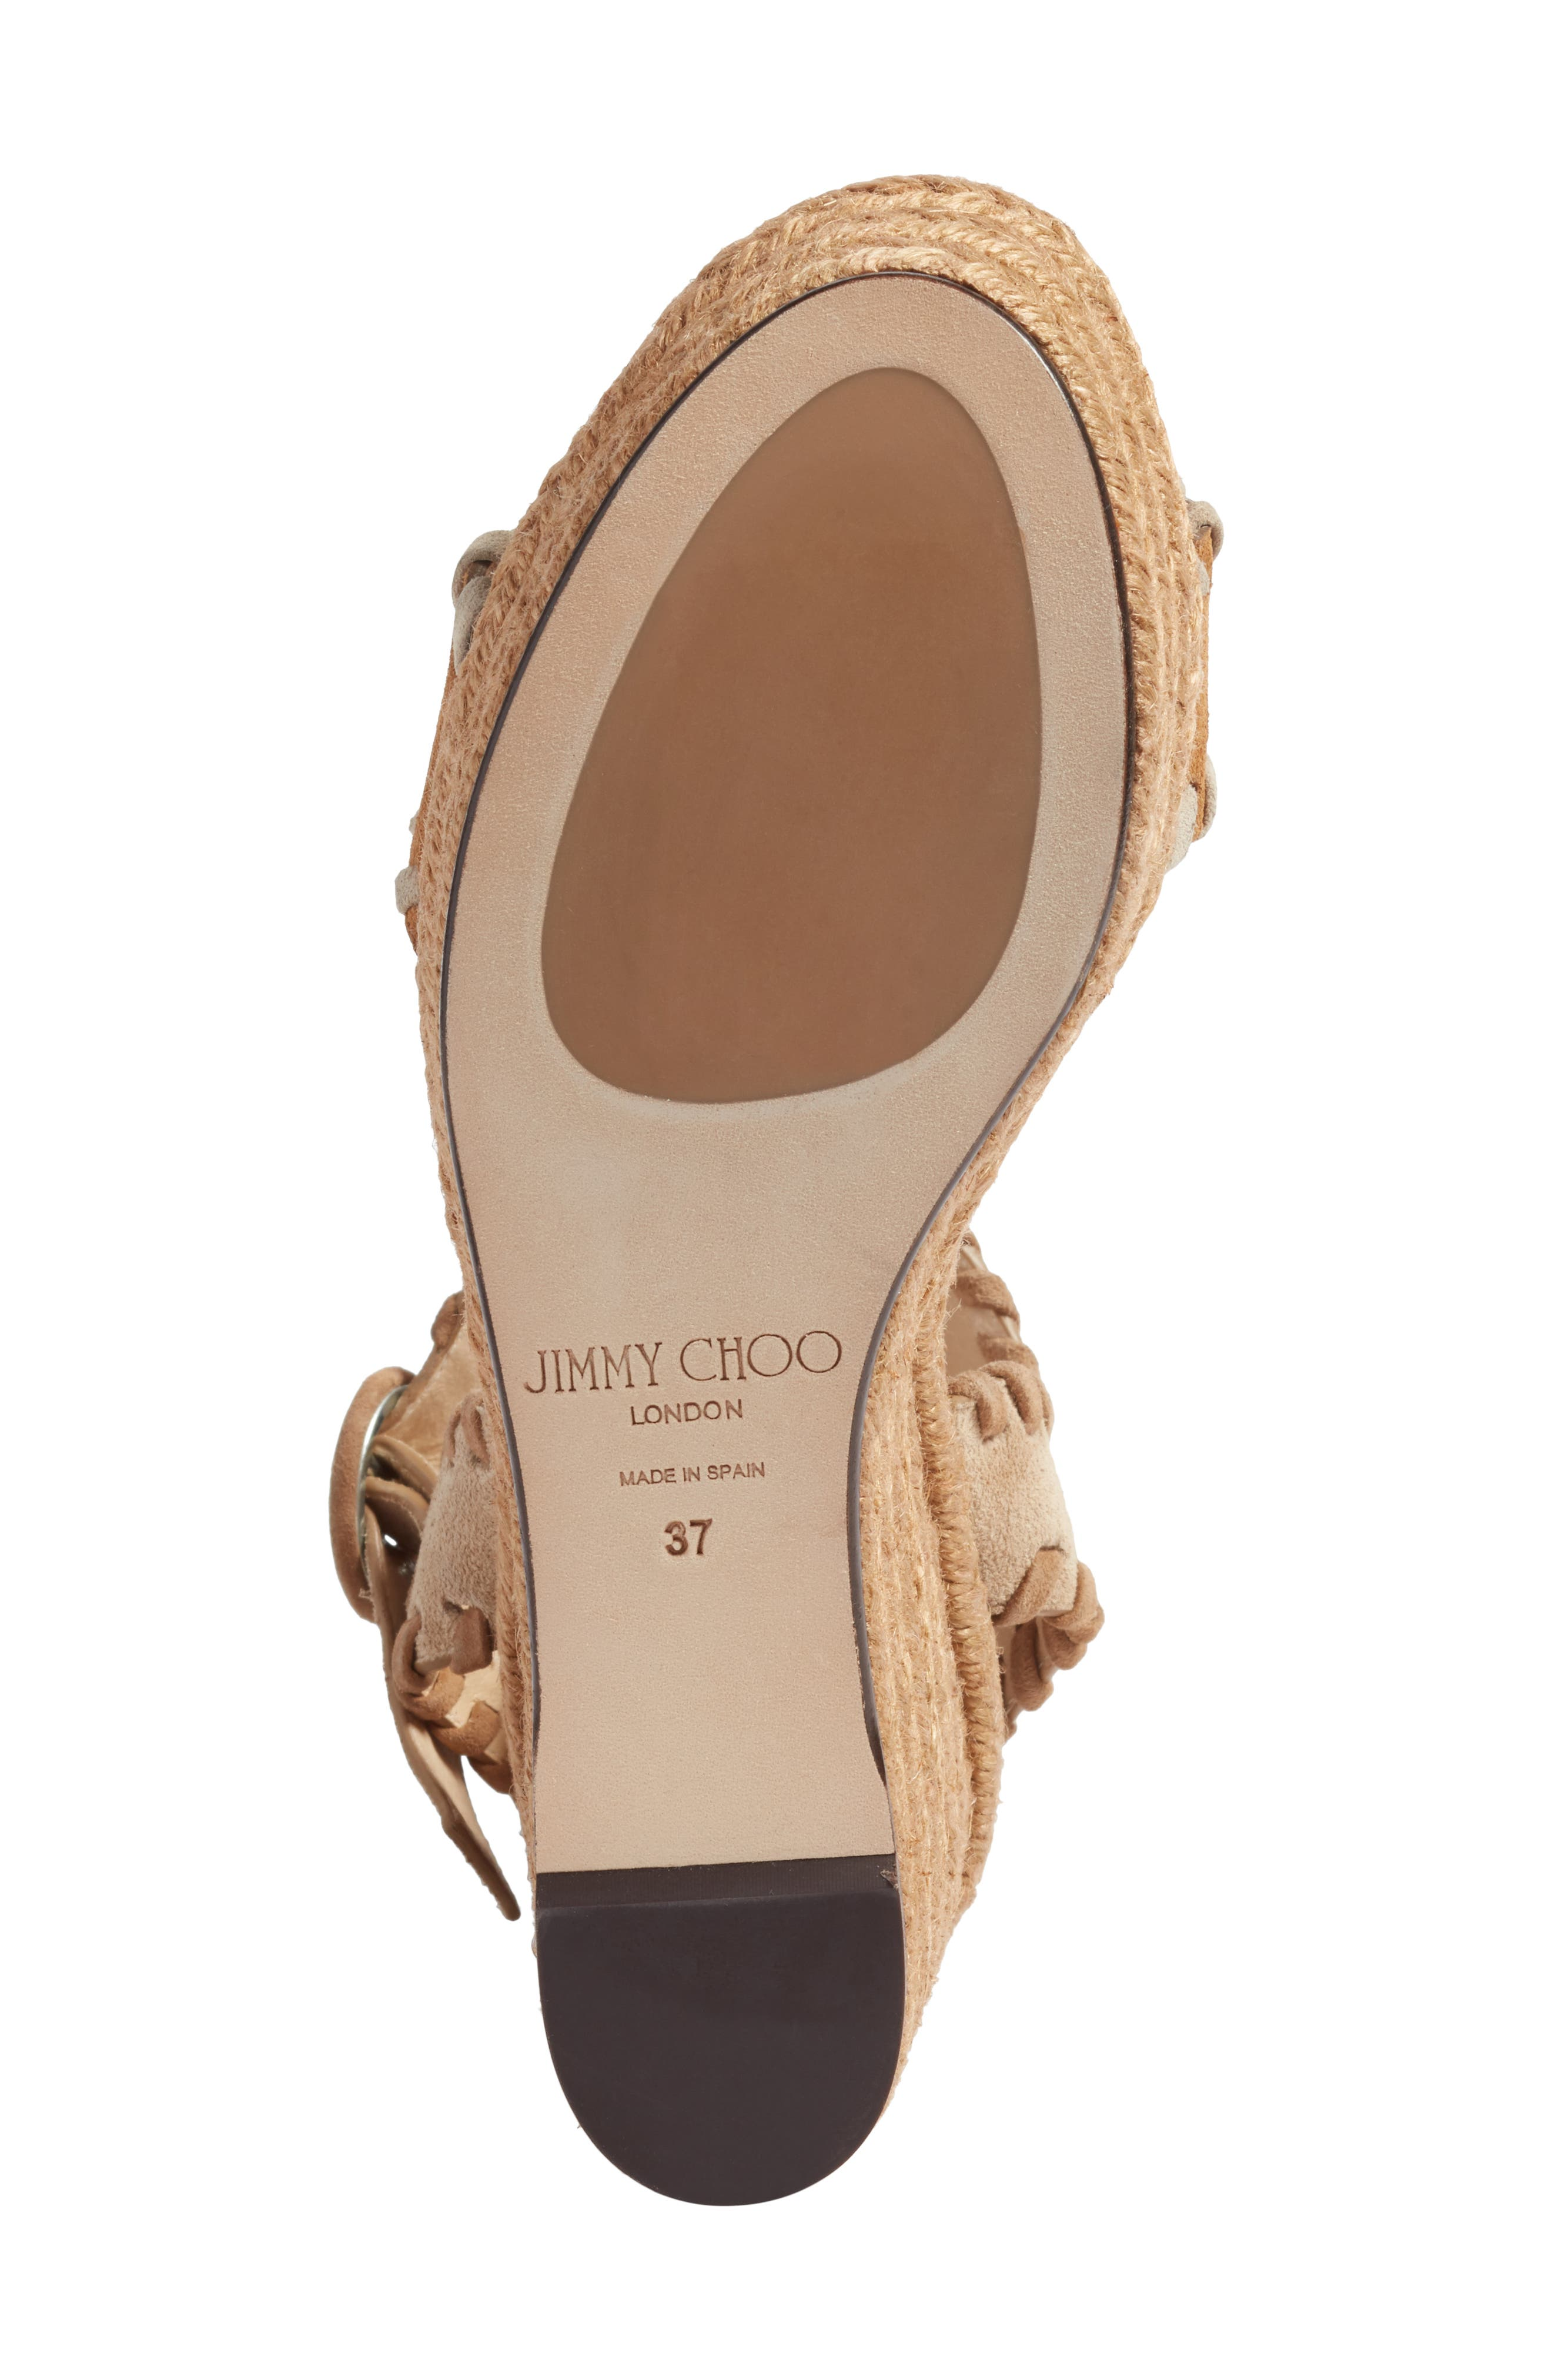 JIMMY CHOO, Abigail Whipstitch Wedge, Alternate thumbnail 6, color, NATURAL/ BROWN